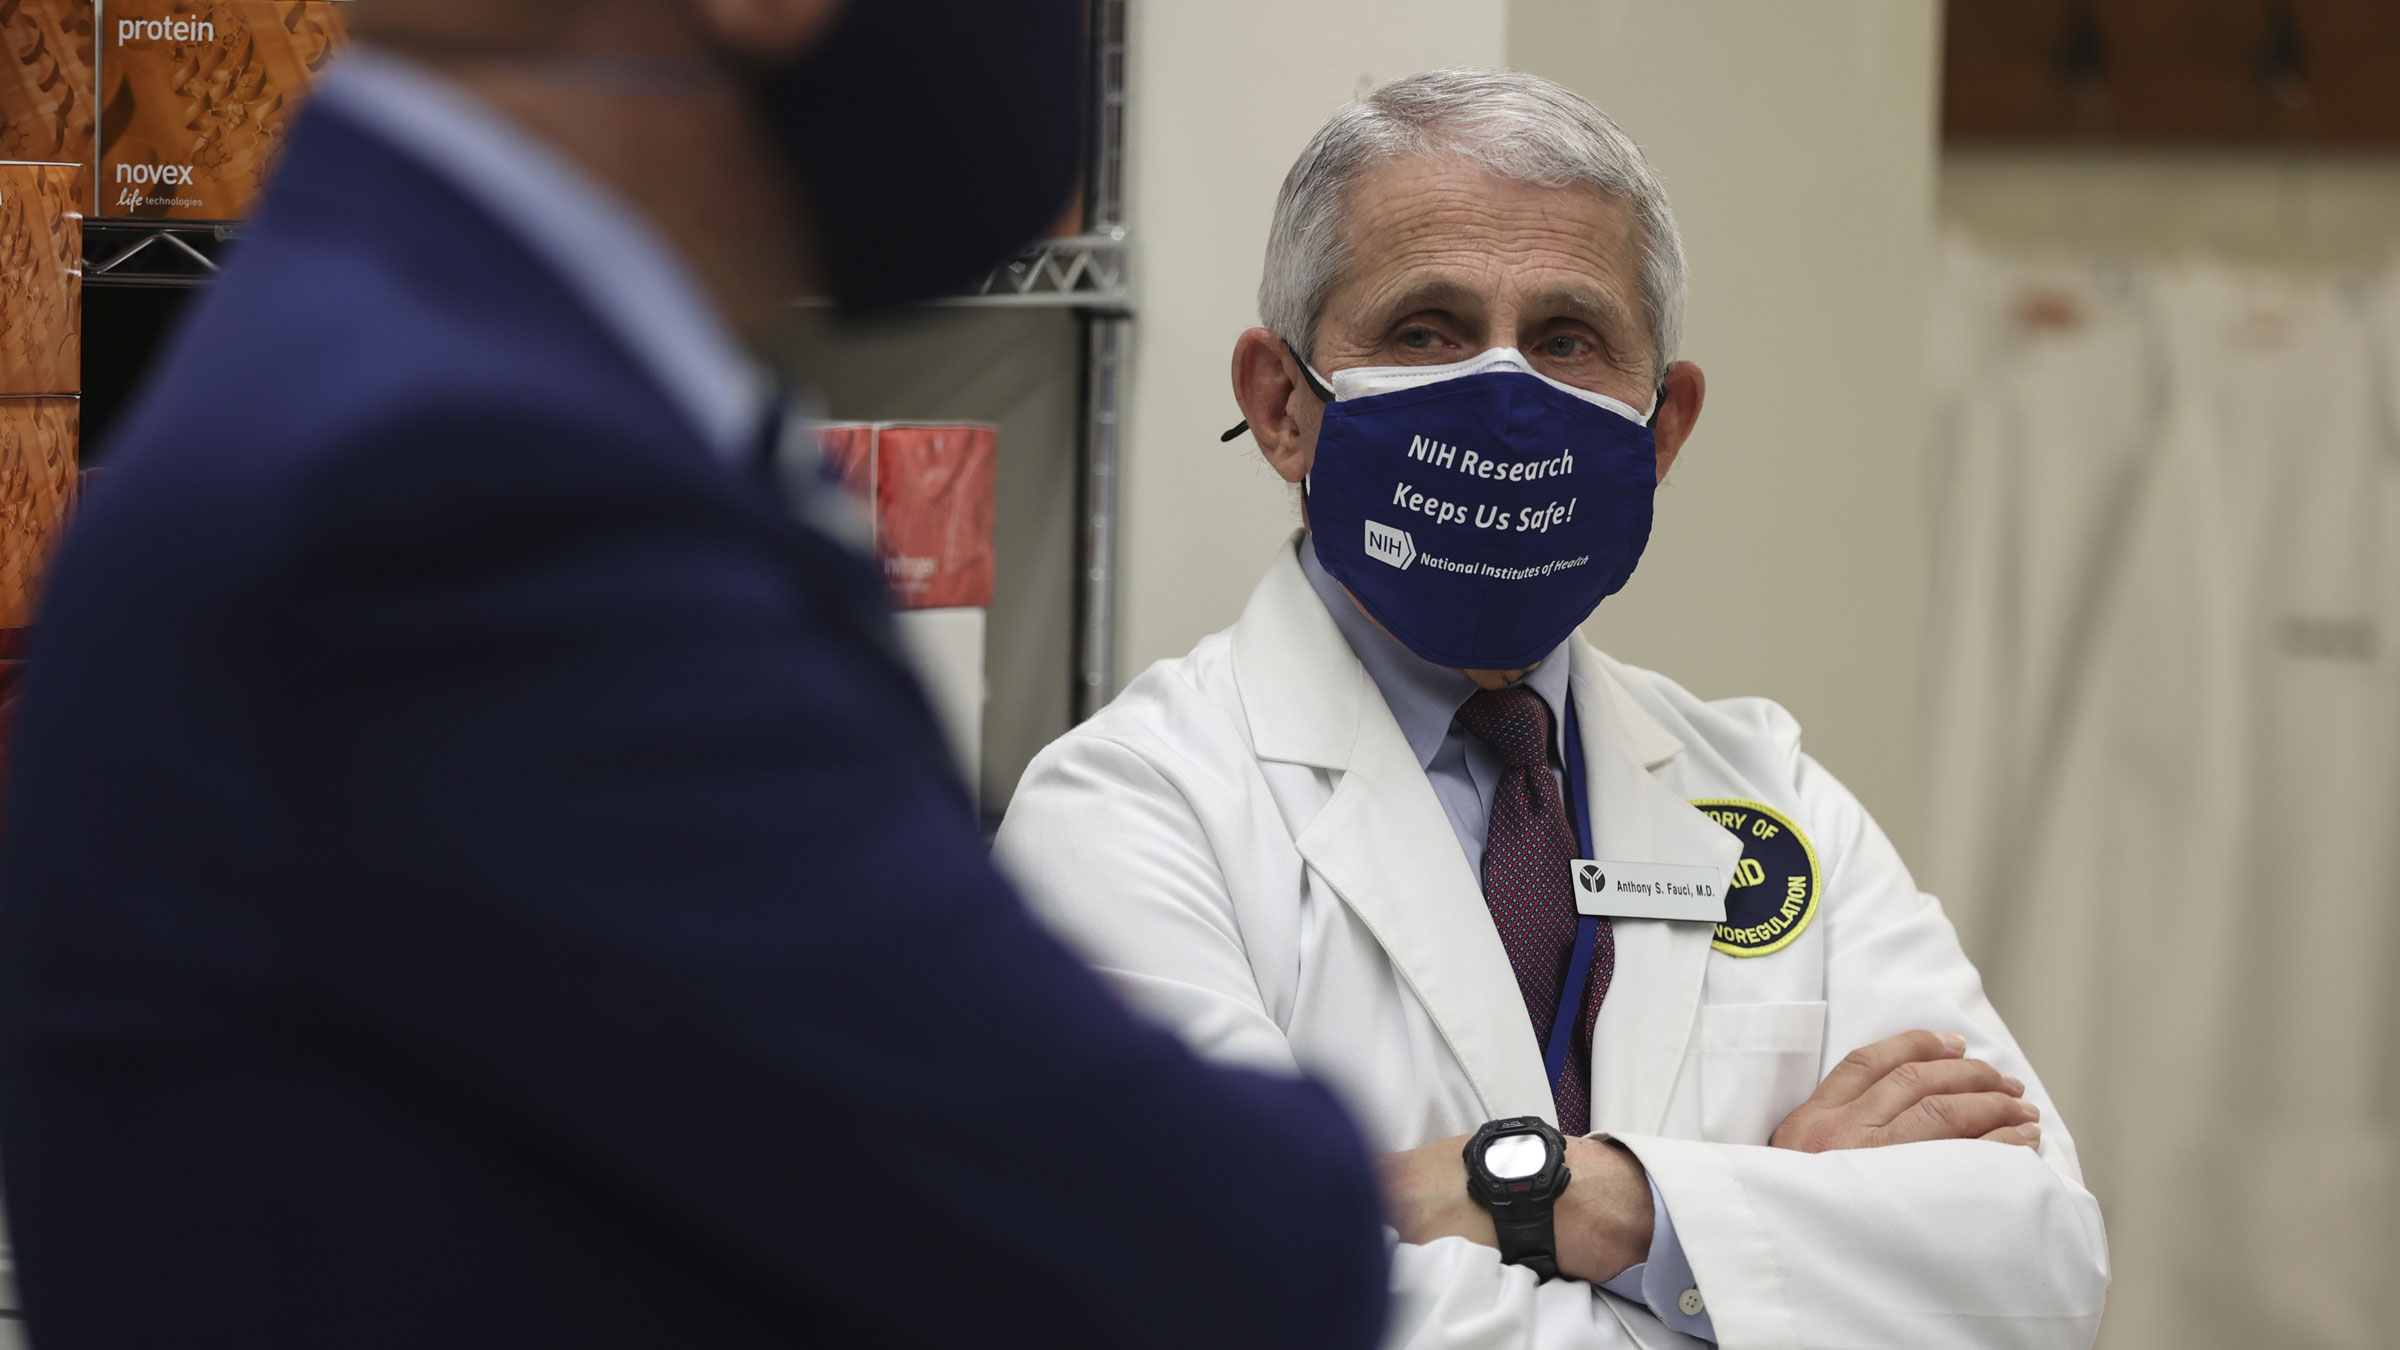 Dr. Anthony Fauci joins President Joe Biden while touring the National Institutes of Health on February 11.